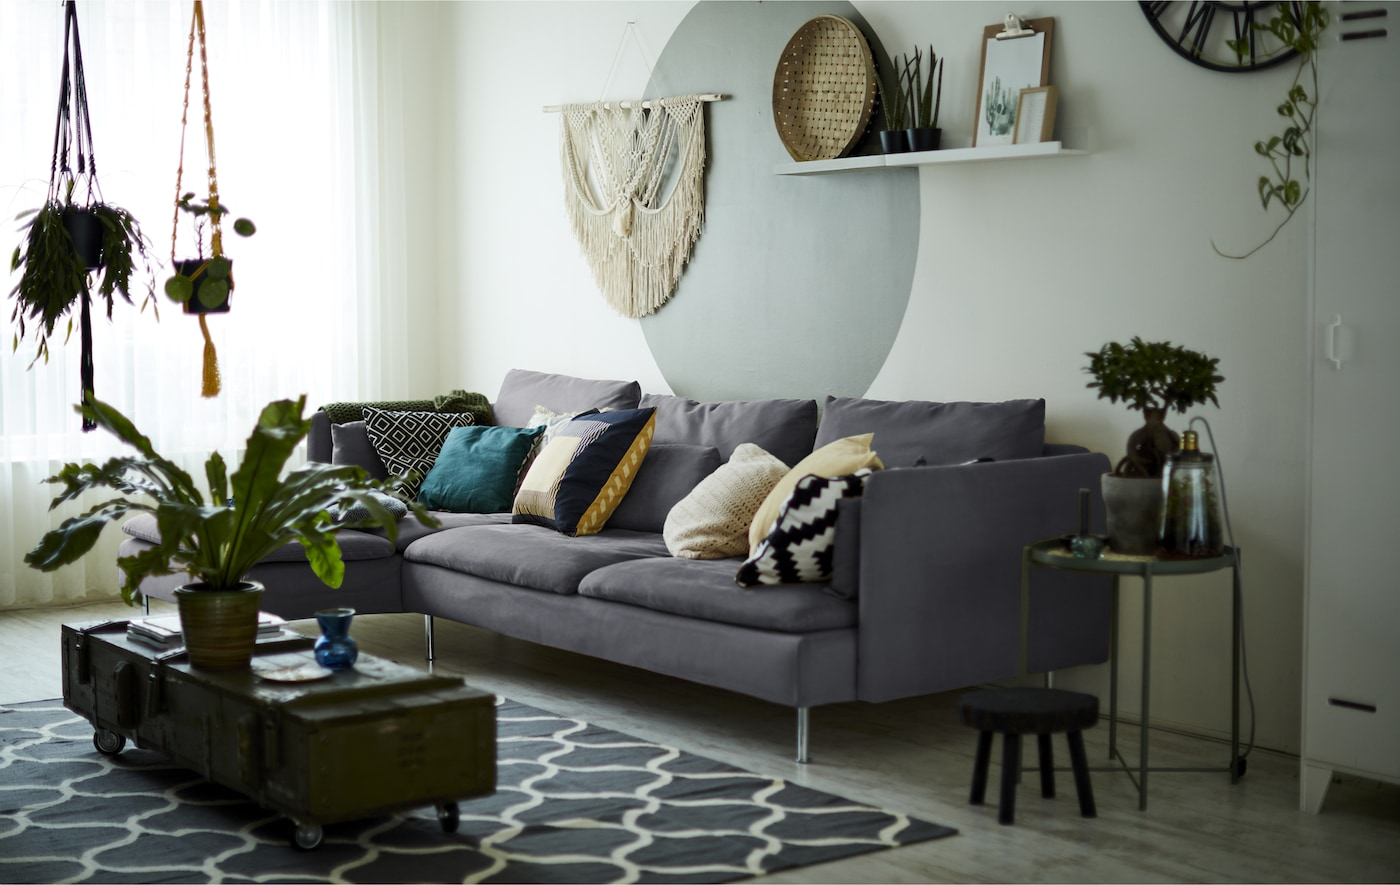 A living room with grey sofa and indoor plants.